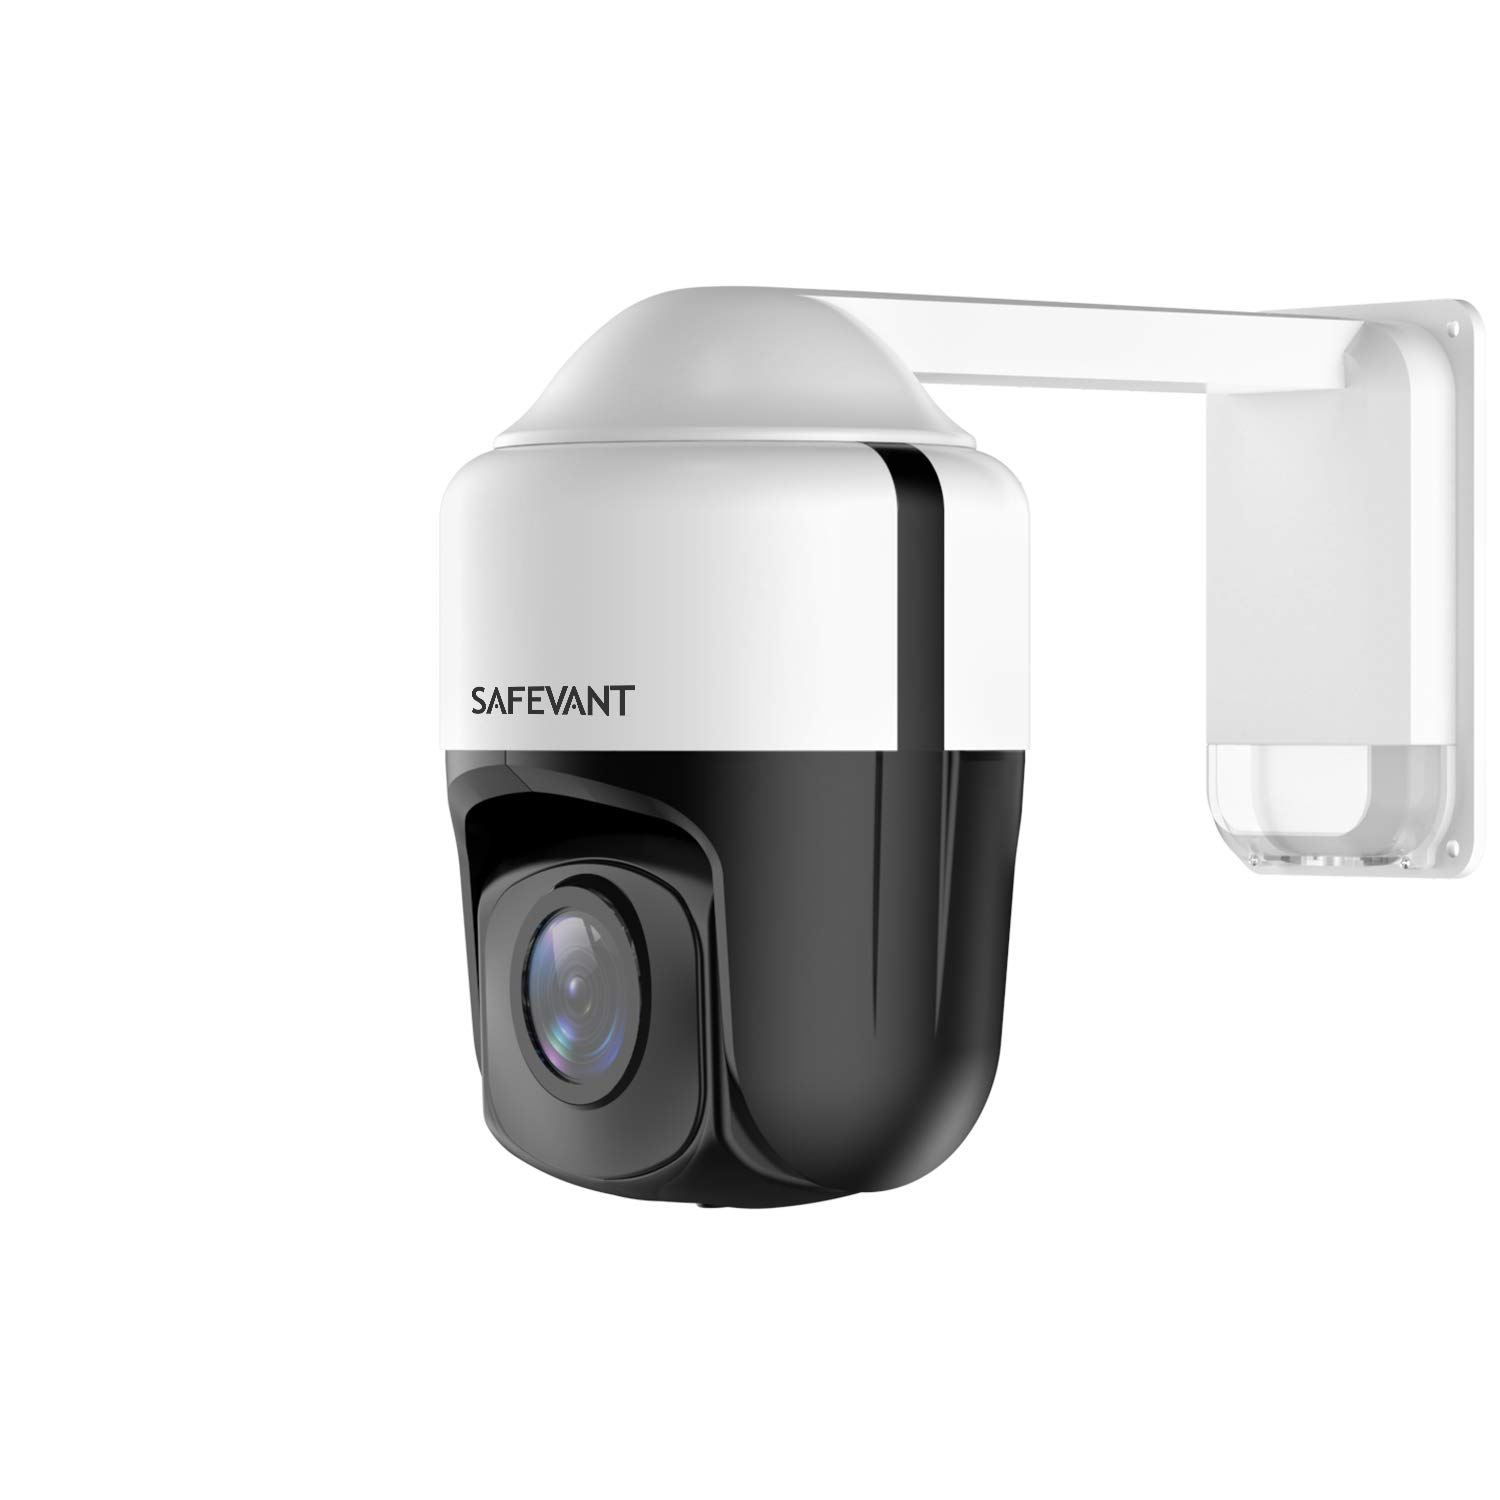 Outdoor PTZ Camera,SAFEVANT 4X Optical Zoom 2MP 1080P IP PoE Cameras Built-in Mic High Speed ONVIF Security PTZ Dome, Auto-Focus and Night Vision